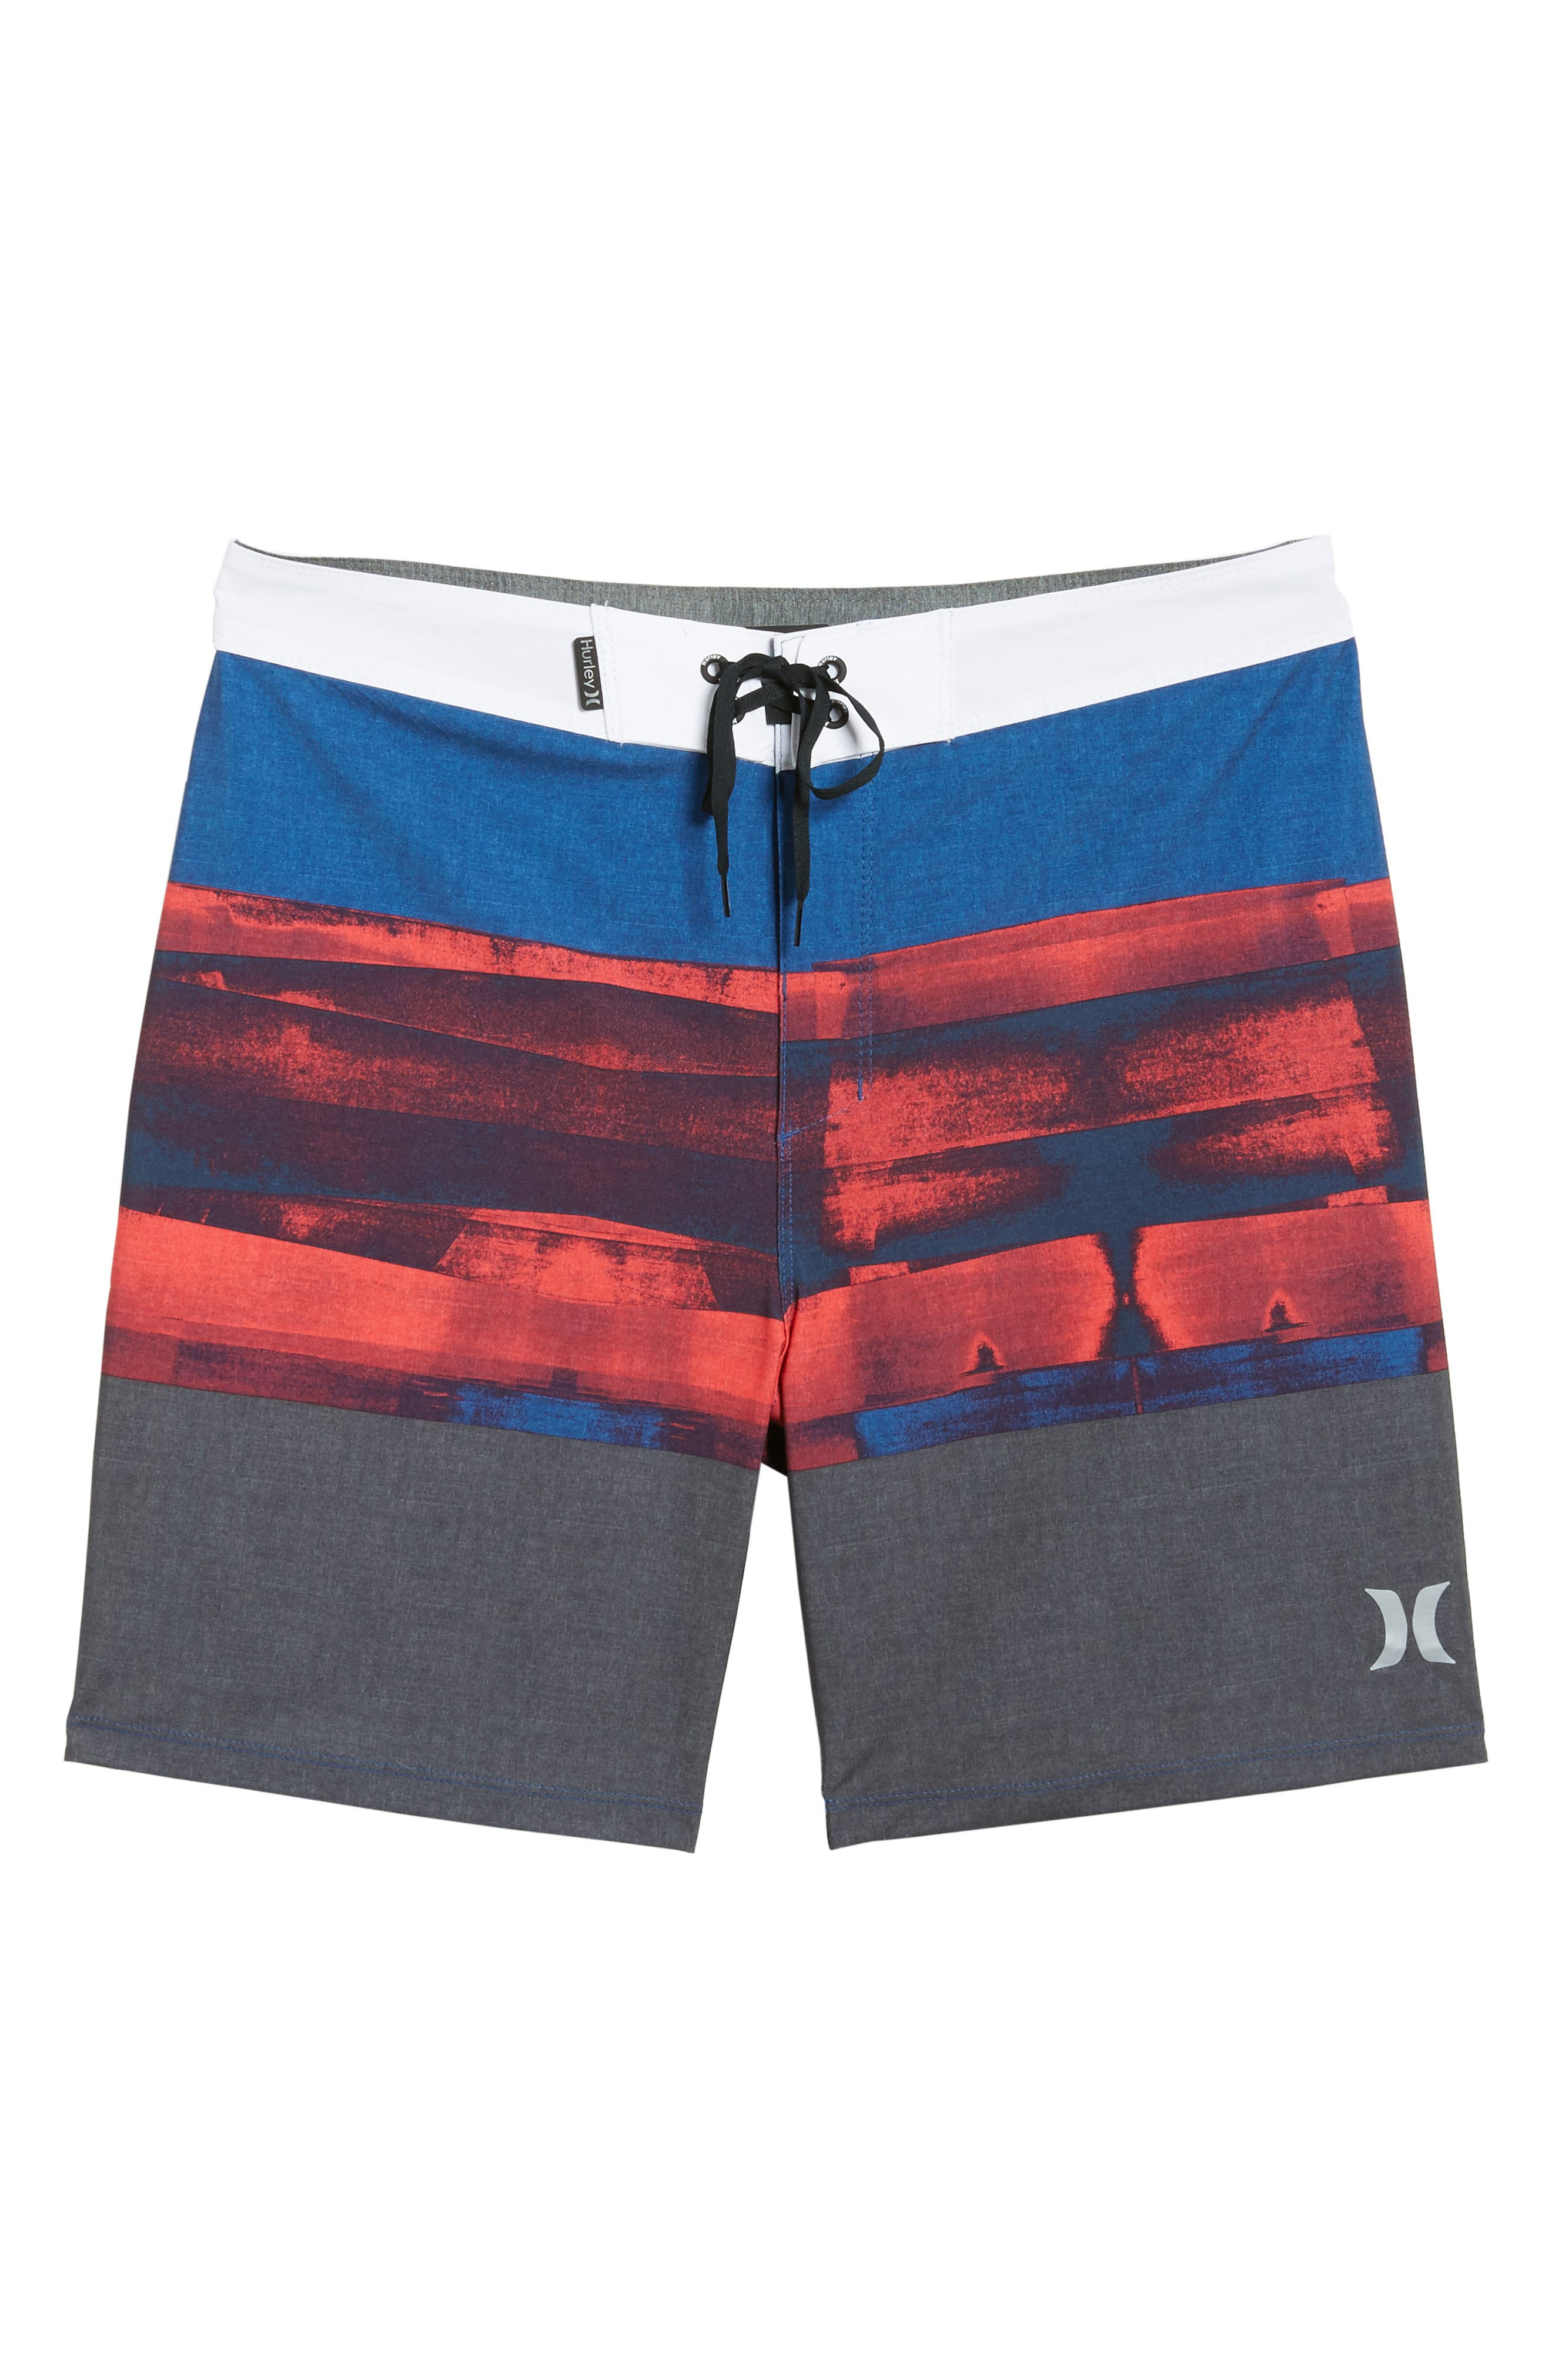 Phantom Roll Out Board Shorts,                             Alternate thumbnail 11, color,